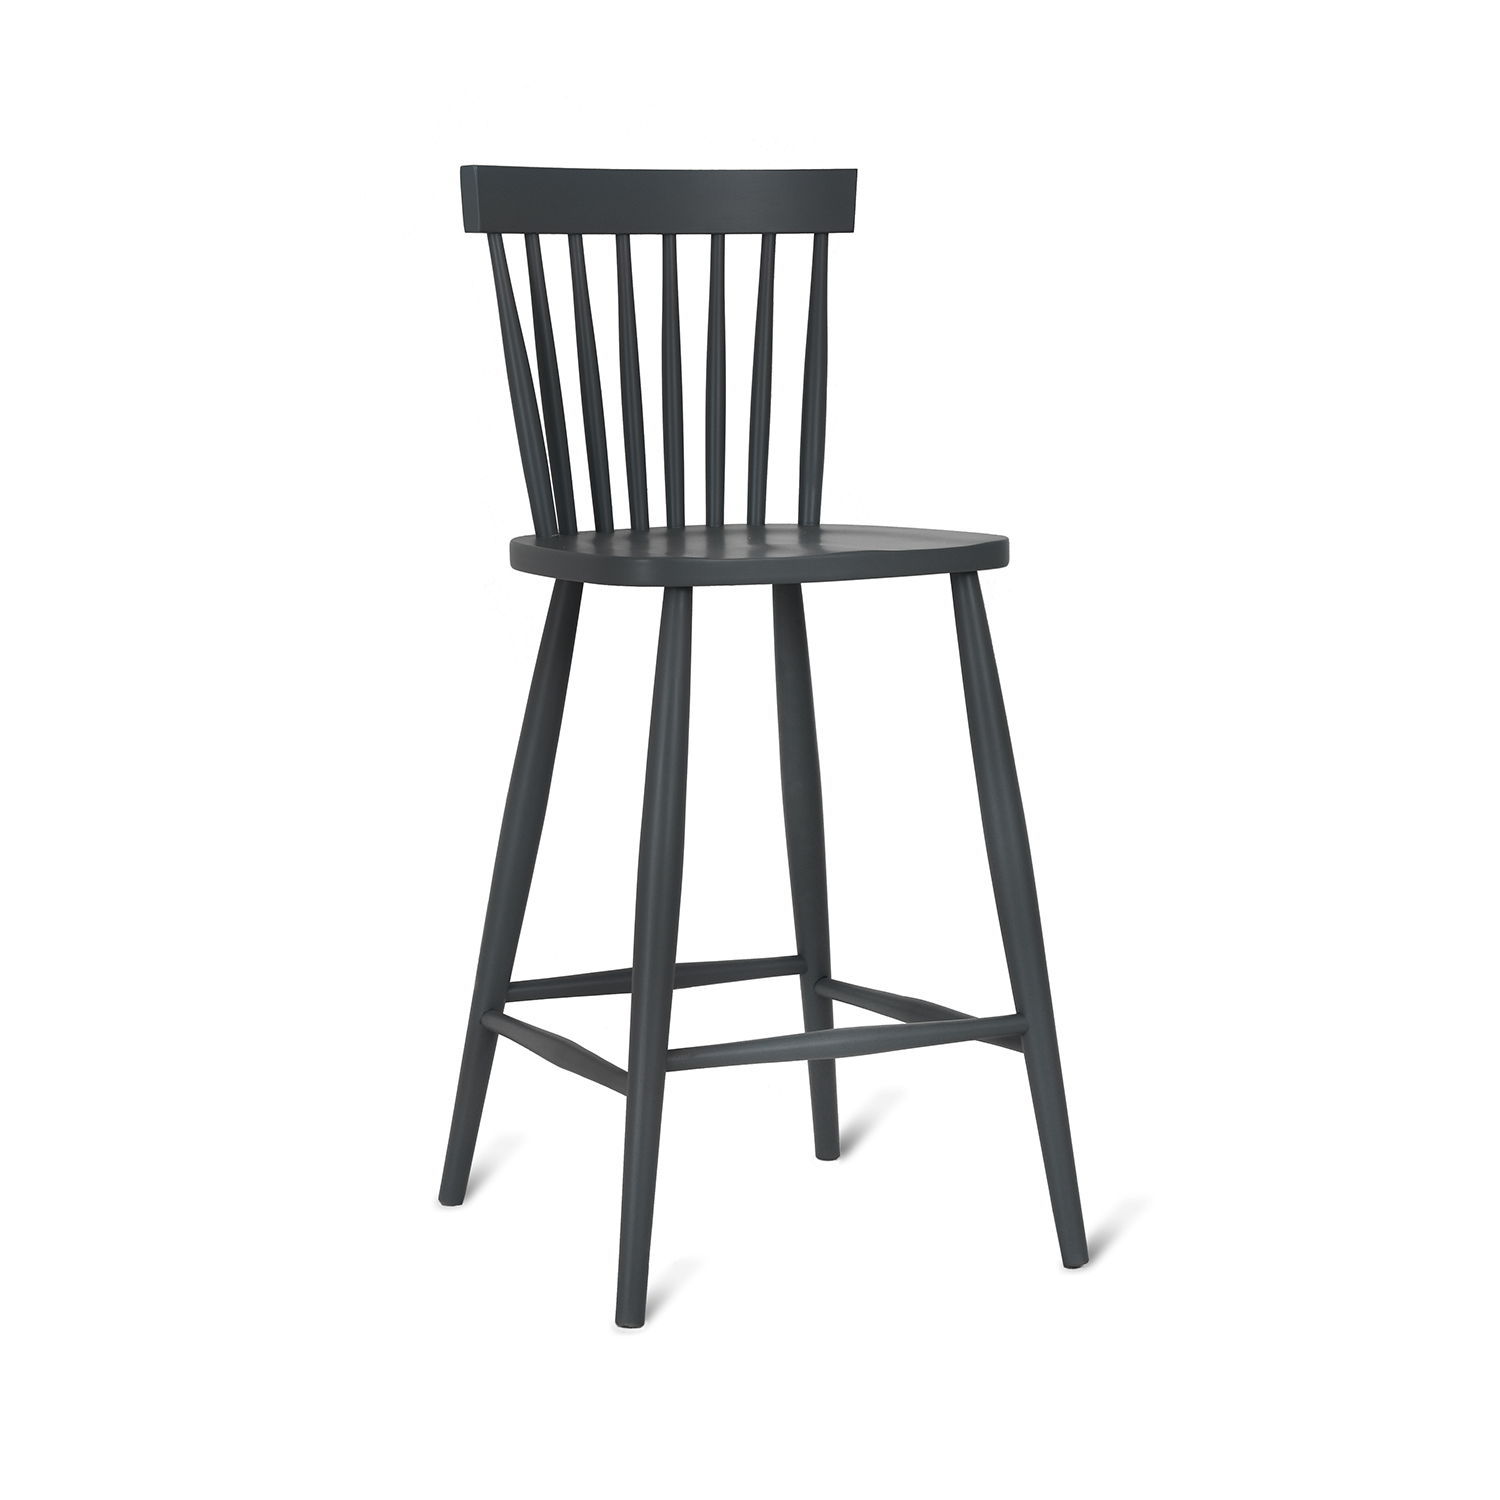 Image of Garden Trading Spindle Bar Stool, Beech, Carbon